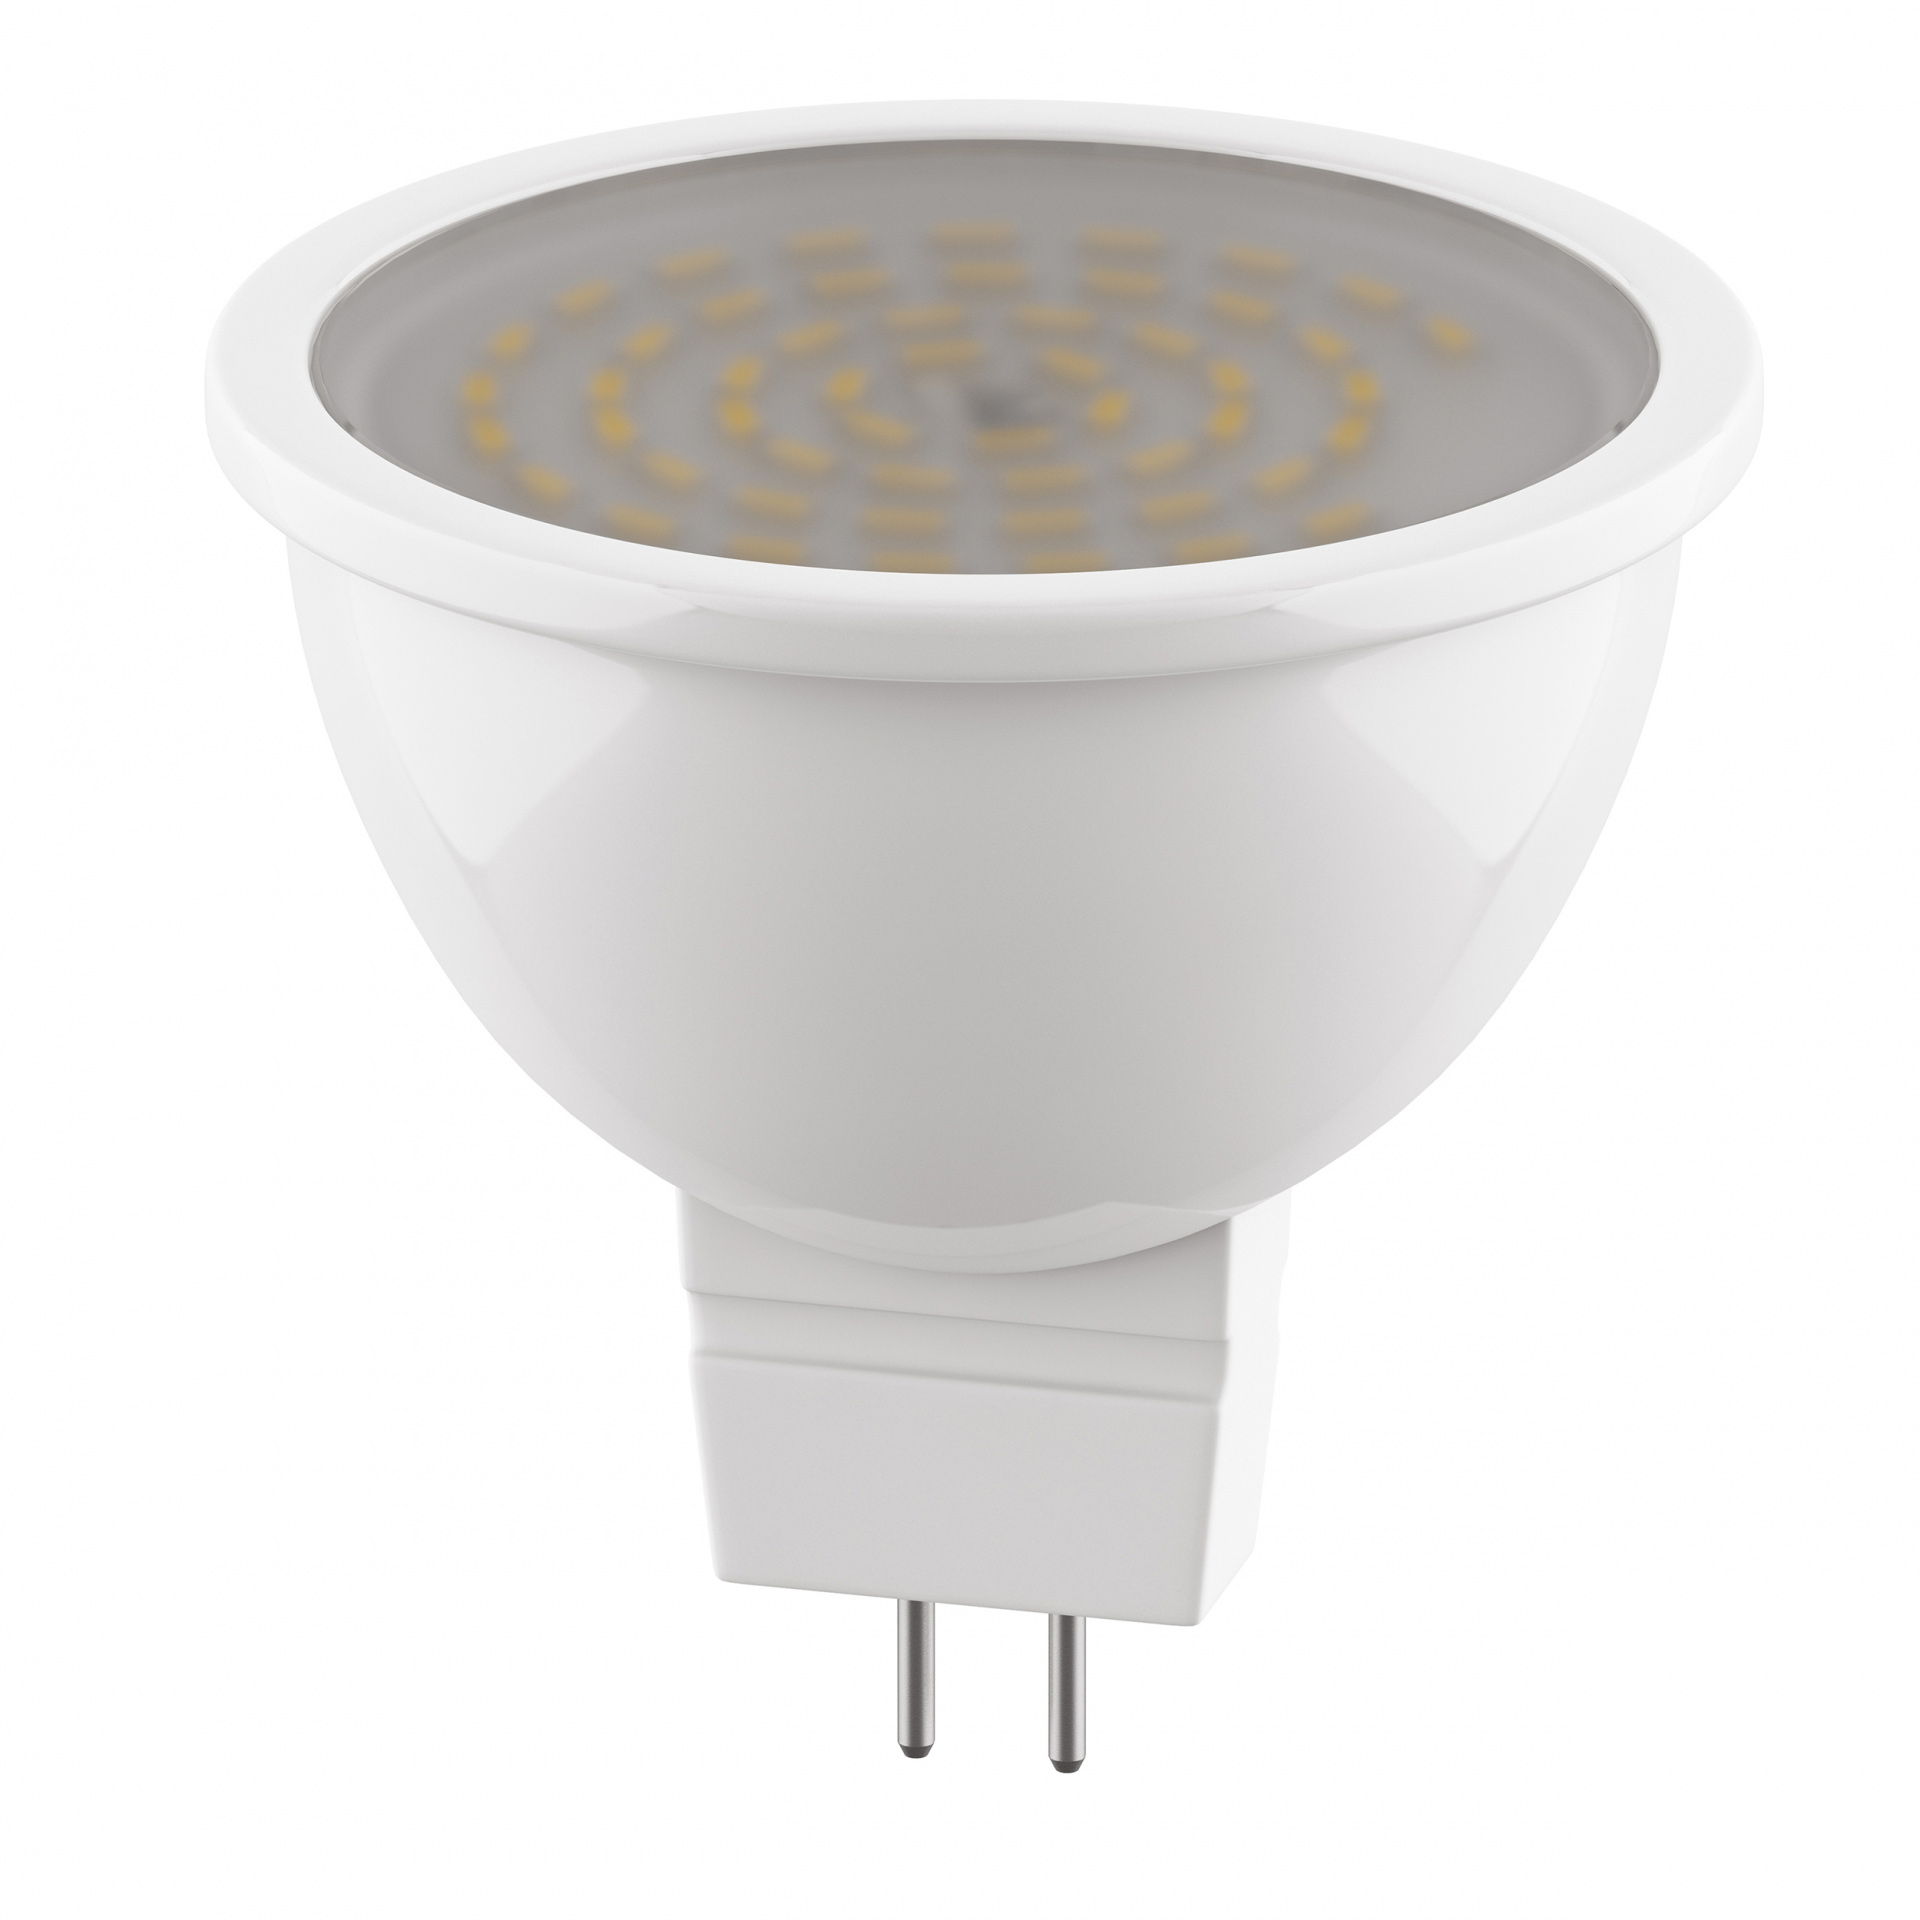 Лампа LED 220V MR16 G5.3 6.5W=60W 325LM 120G FR 4000K 20000H Lightstar 940214